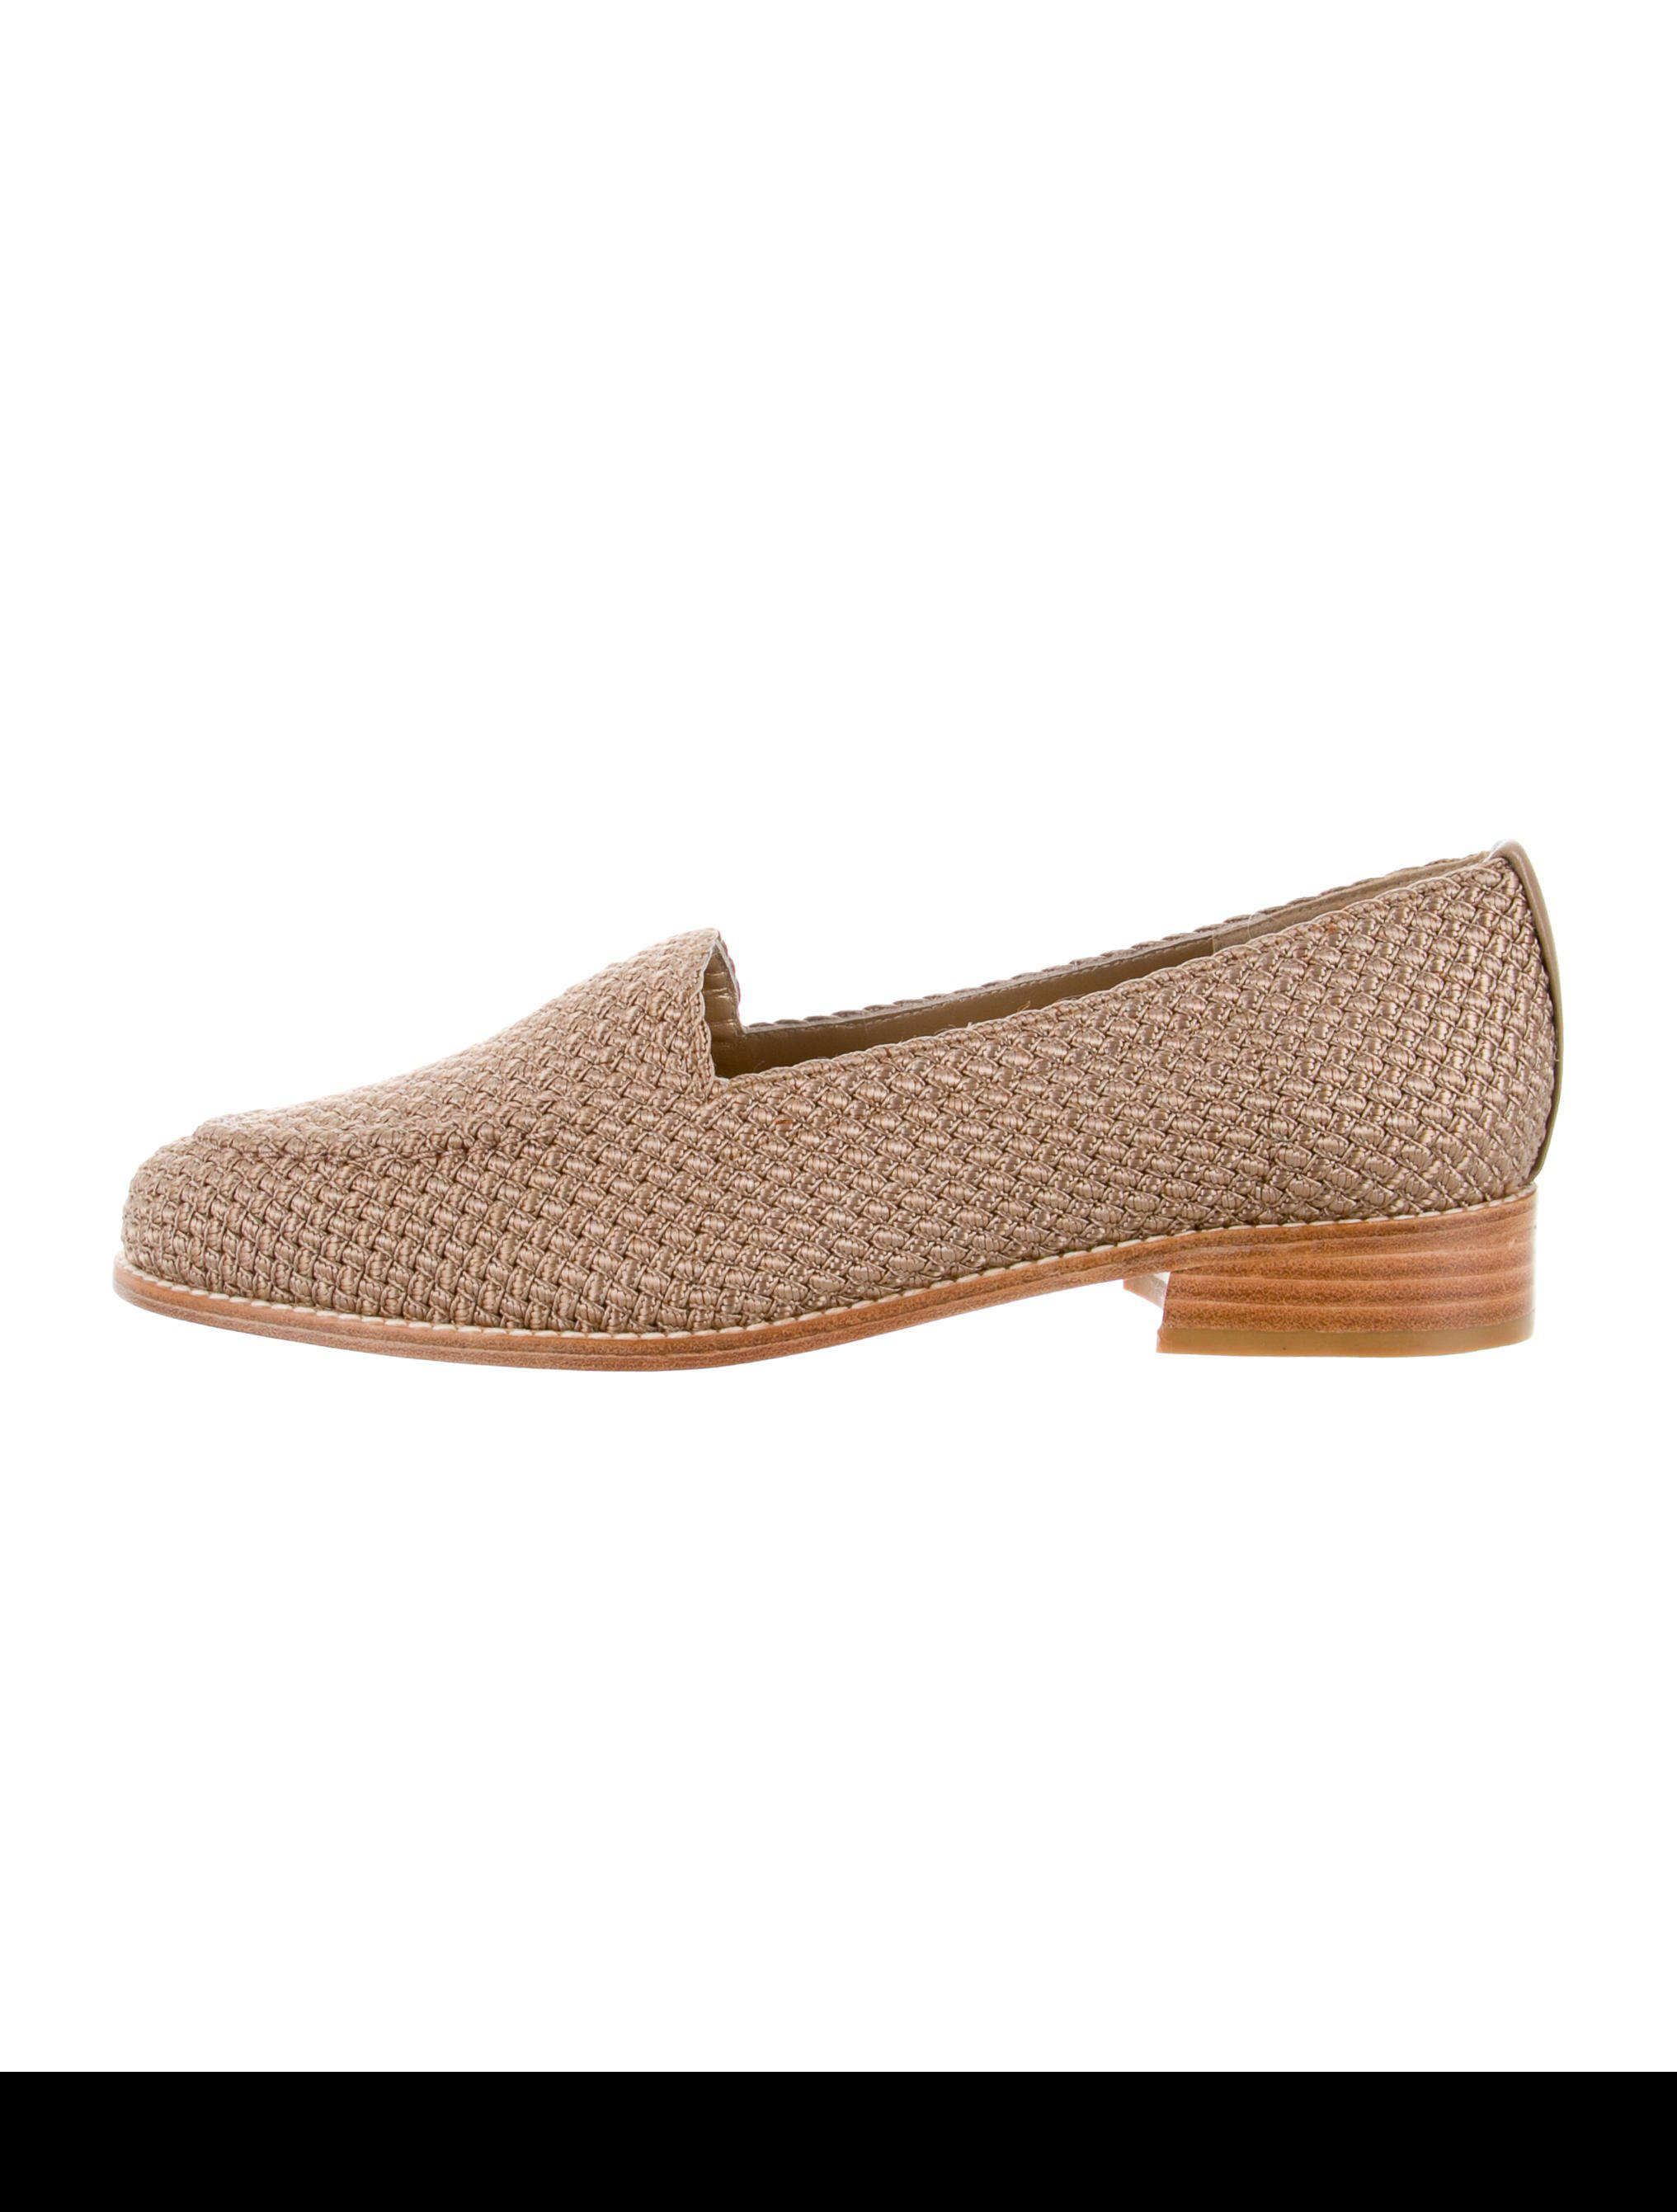 Stuart Weitzman Suede Espadrille Flats w/ Tags outlet newest discount 2015 sneakernews online 1OTl0K